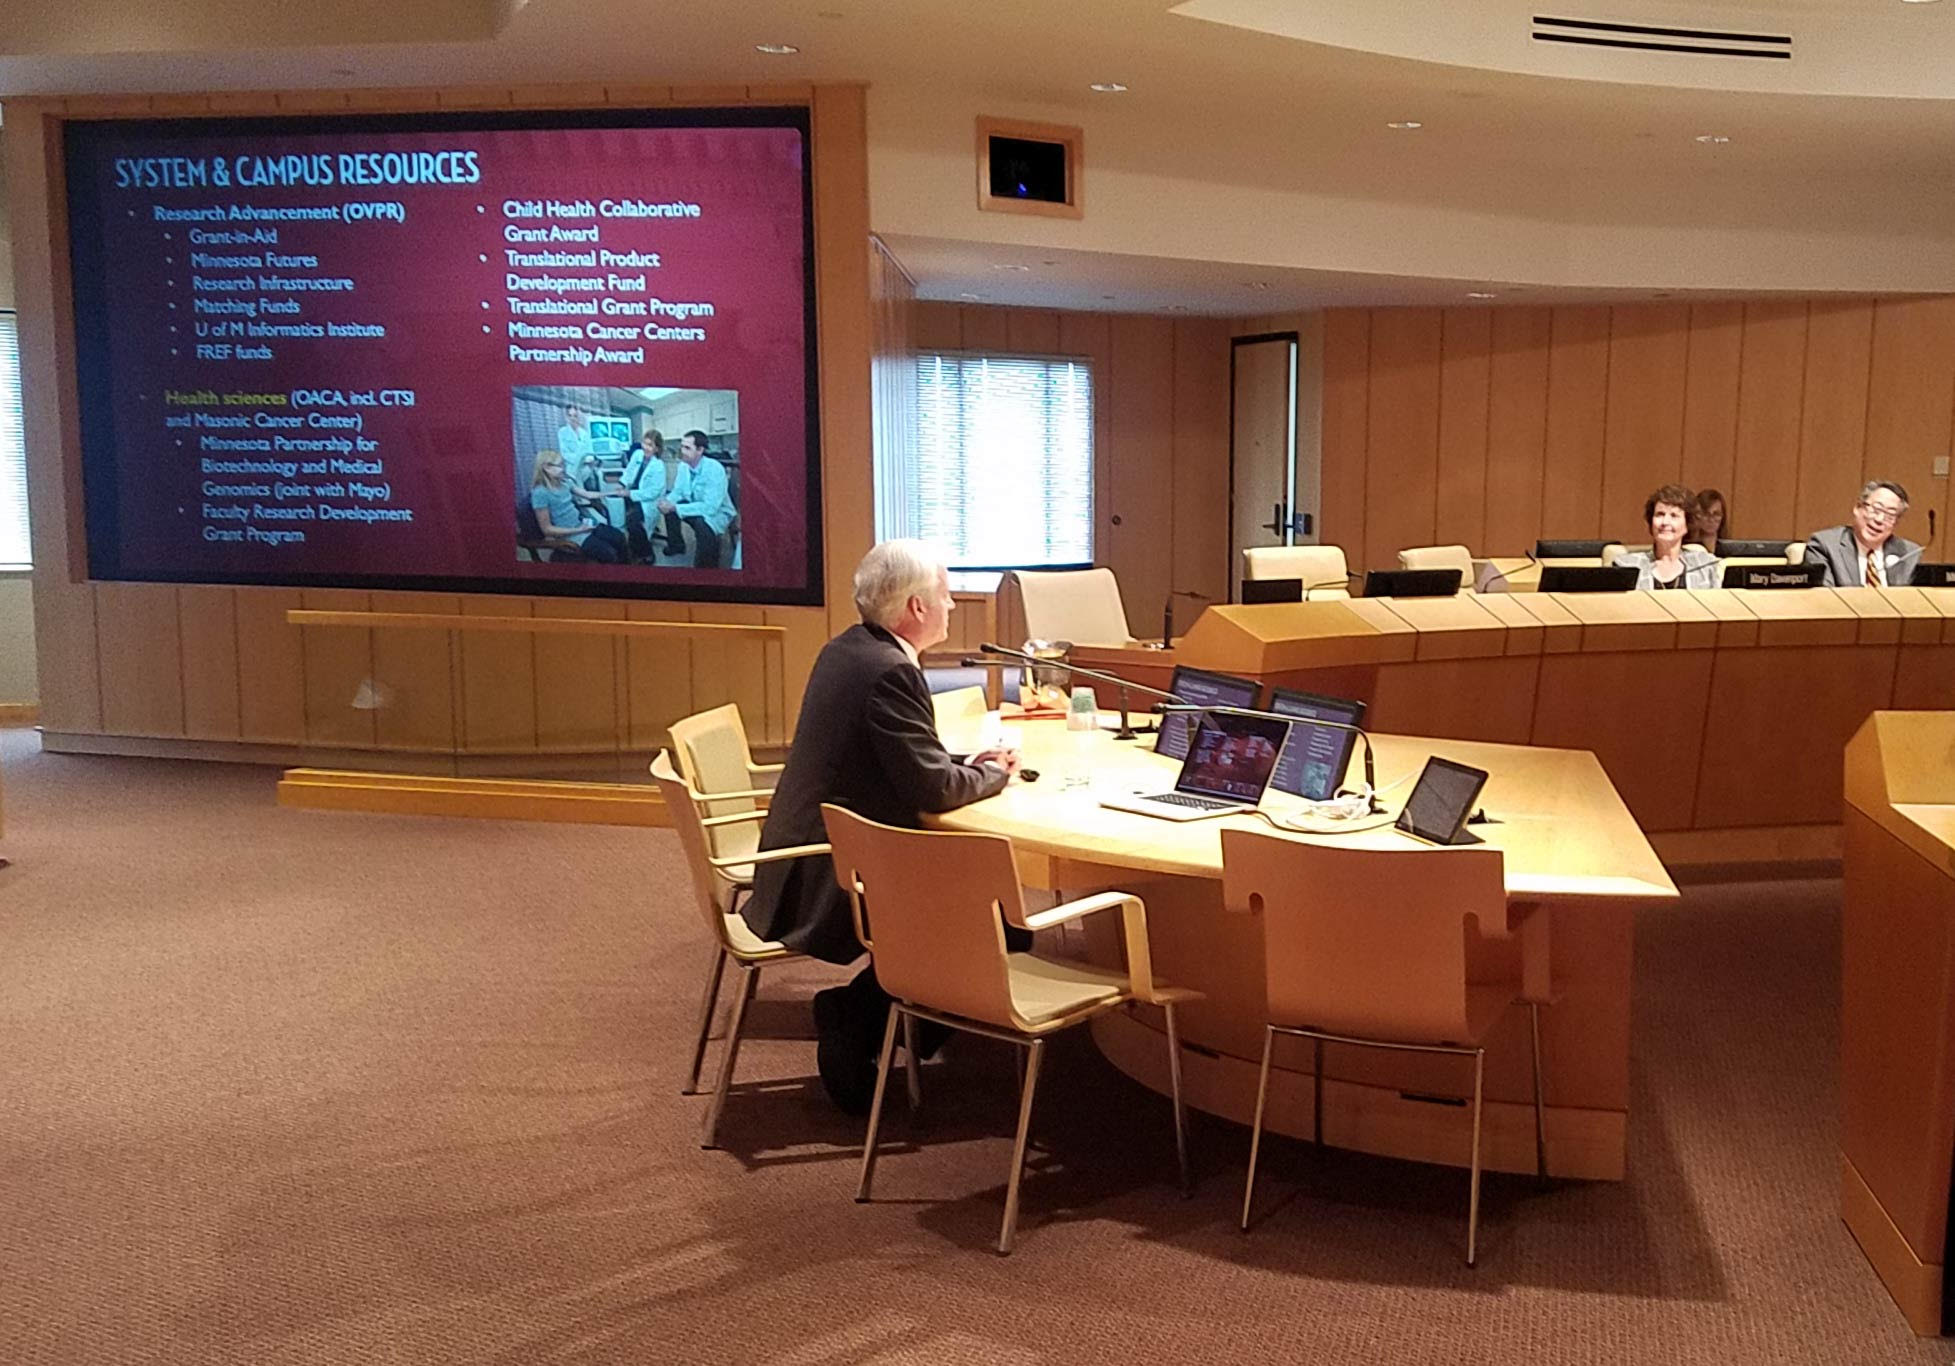 VPR Cramer sits at a table to present at the October 11 Board of Regents meeting. Slide from his presentation is projected behind him.